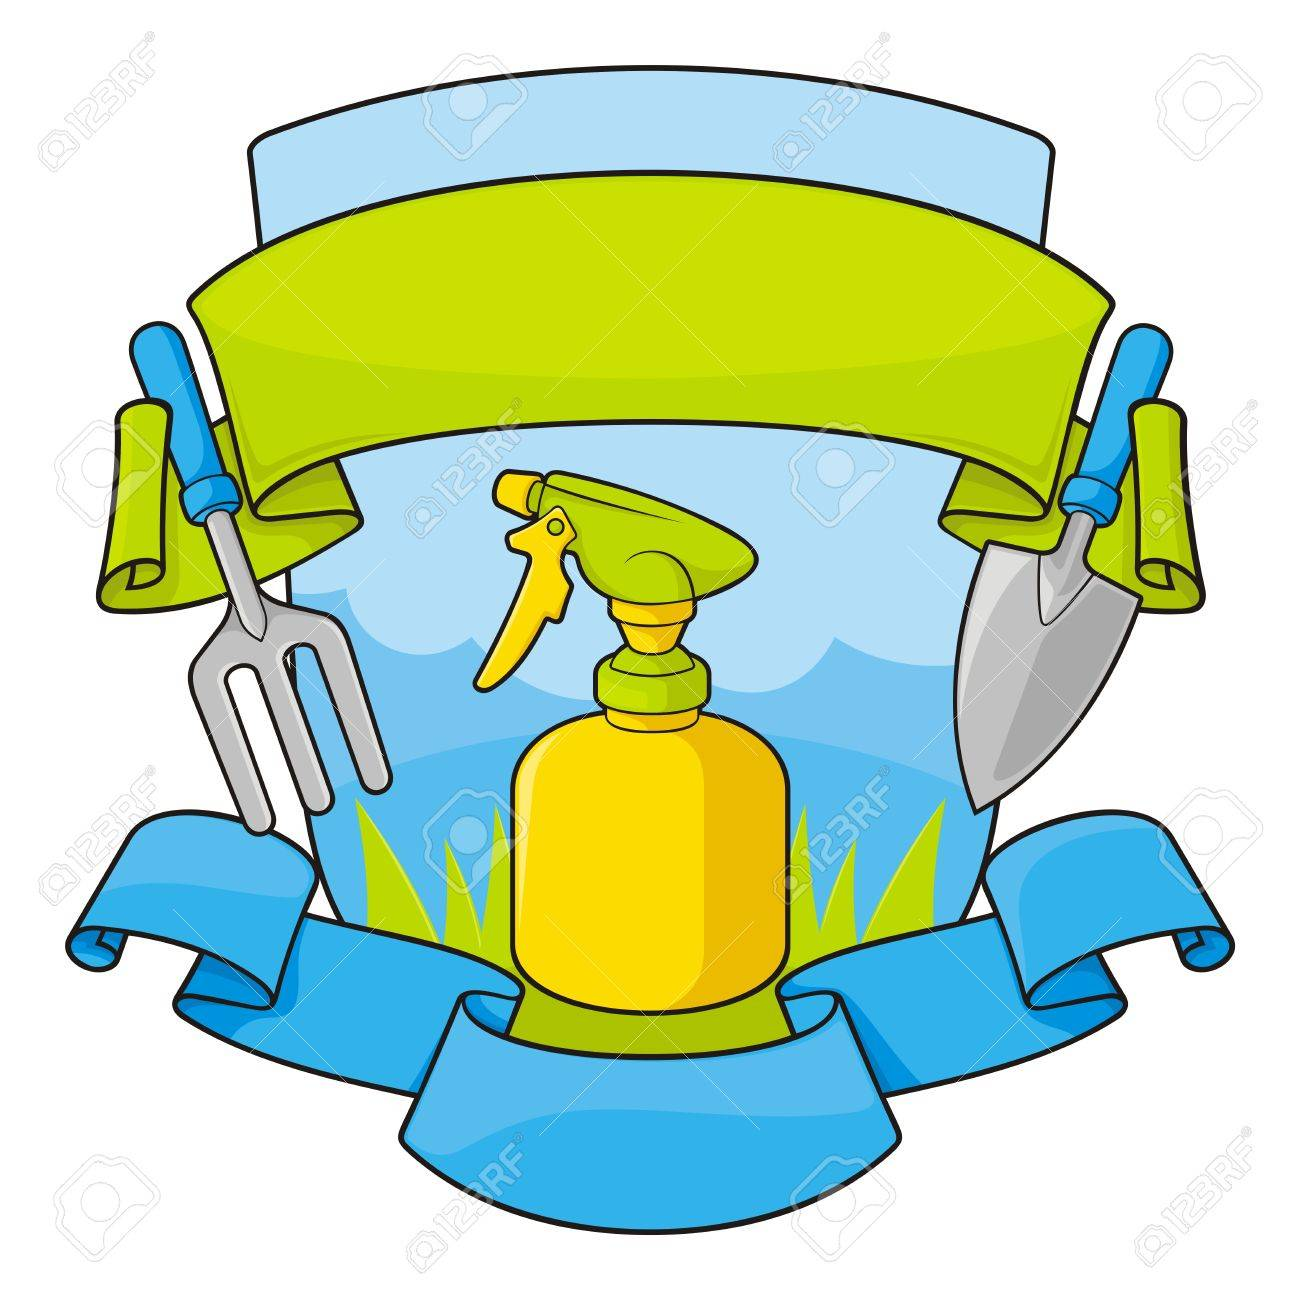 Gardening shield with grass and sky background, tools, spray bottle and banners. - 14488746